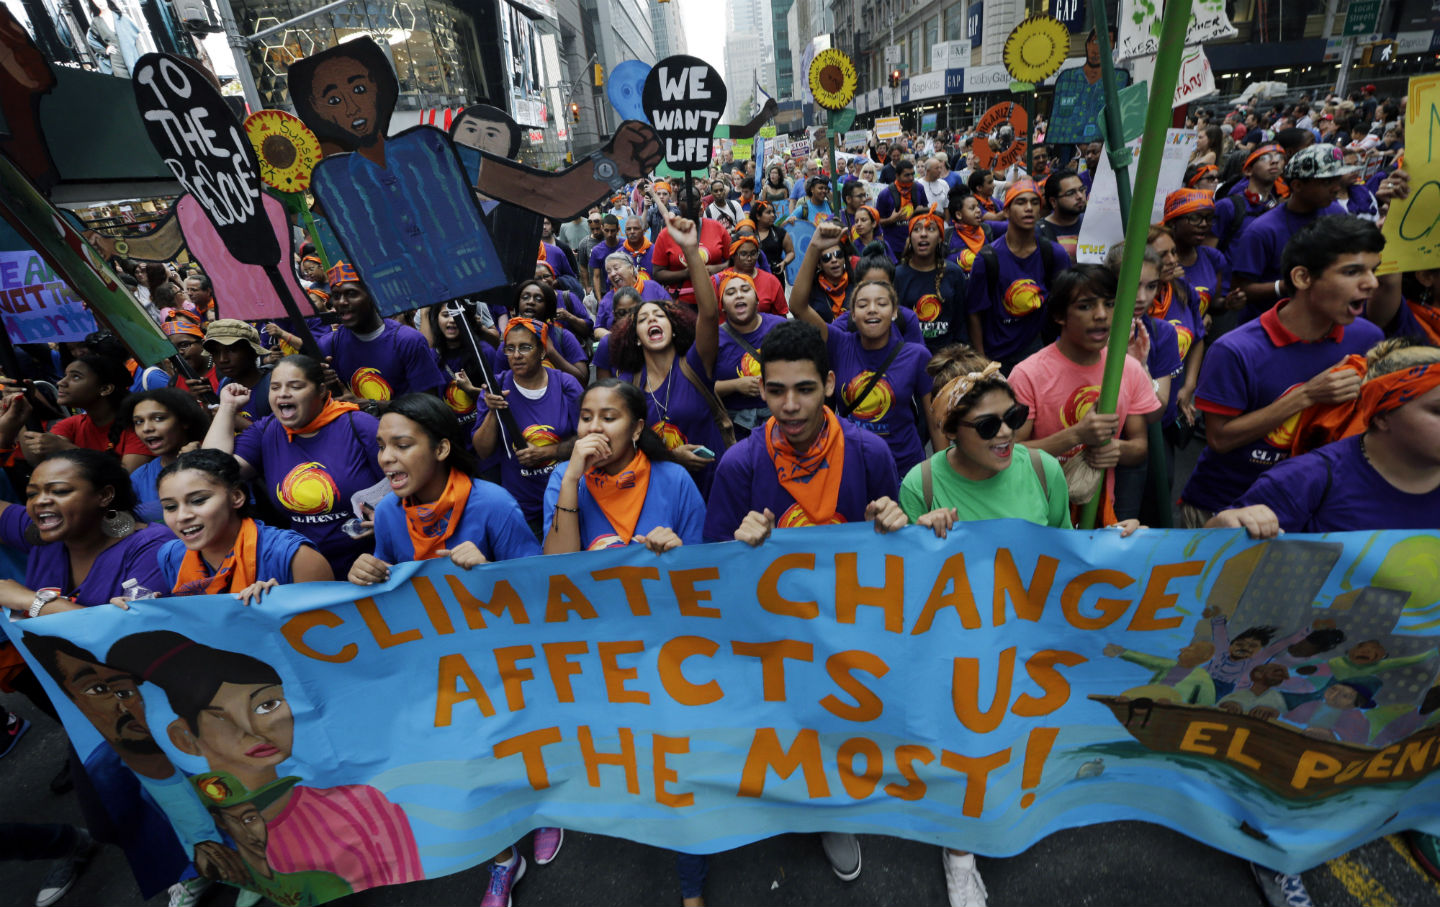 Why scientists are marching on Washington and more than 400 other cities